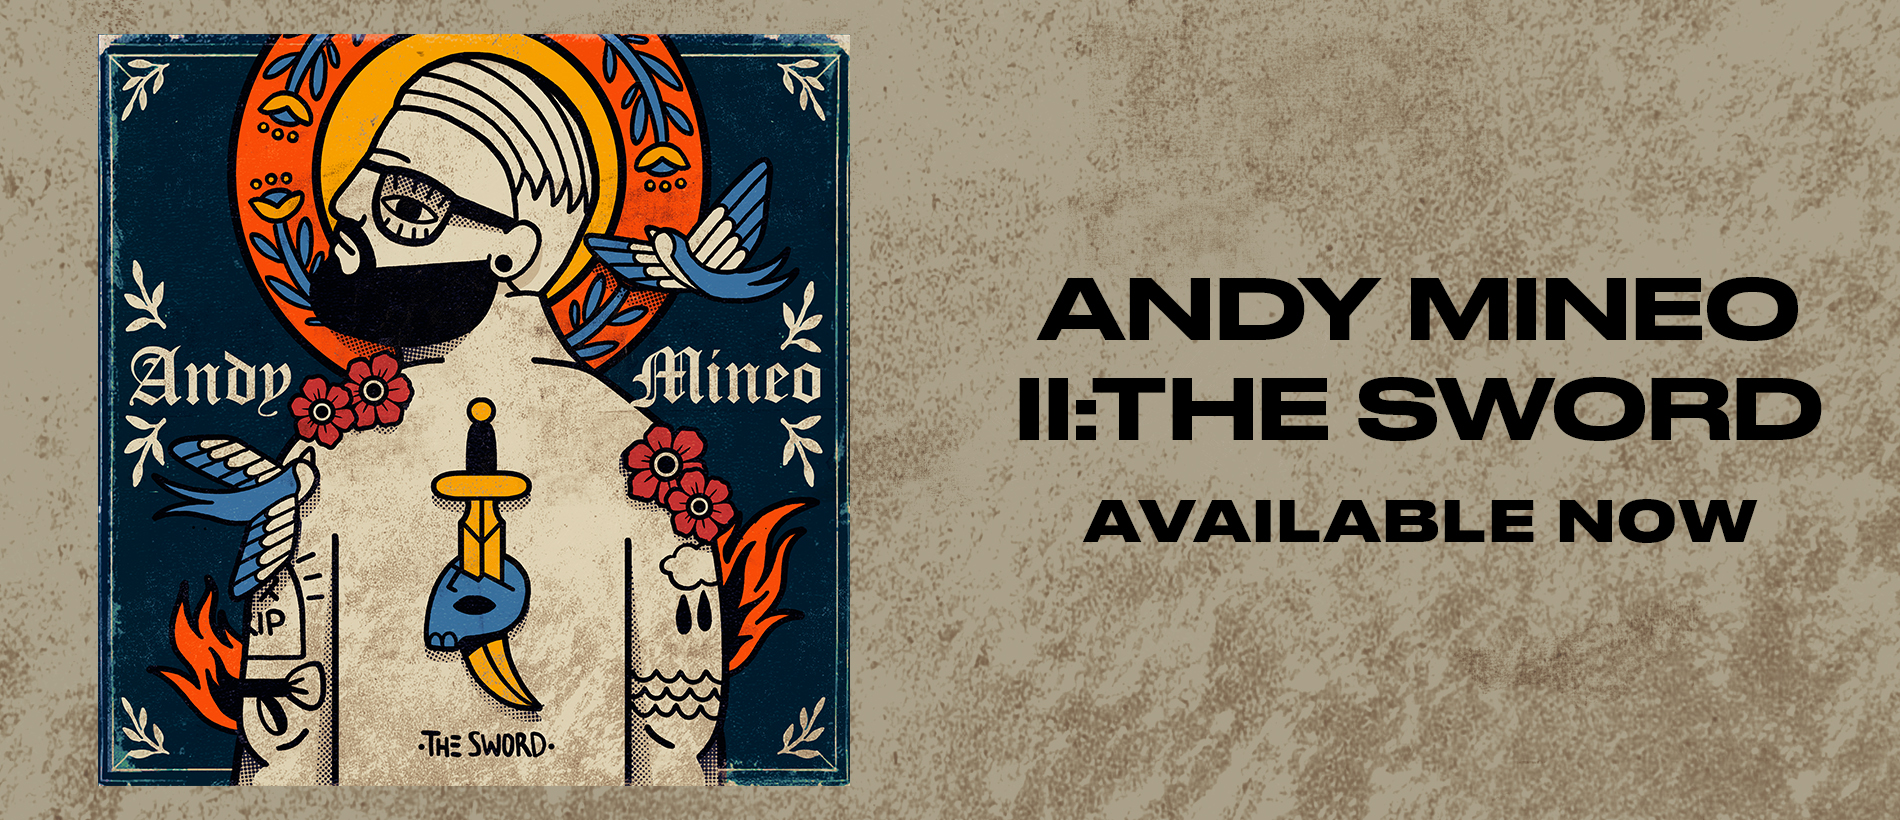 ANDY MINEO X II : THE SWORD